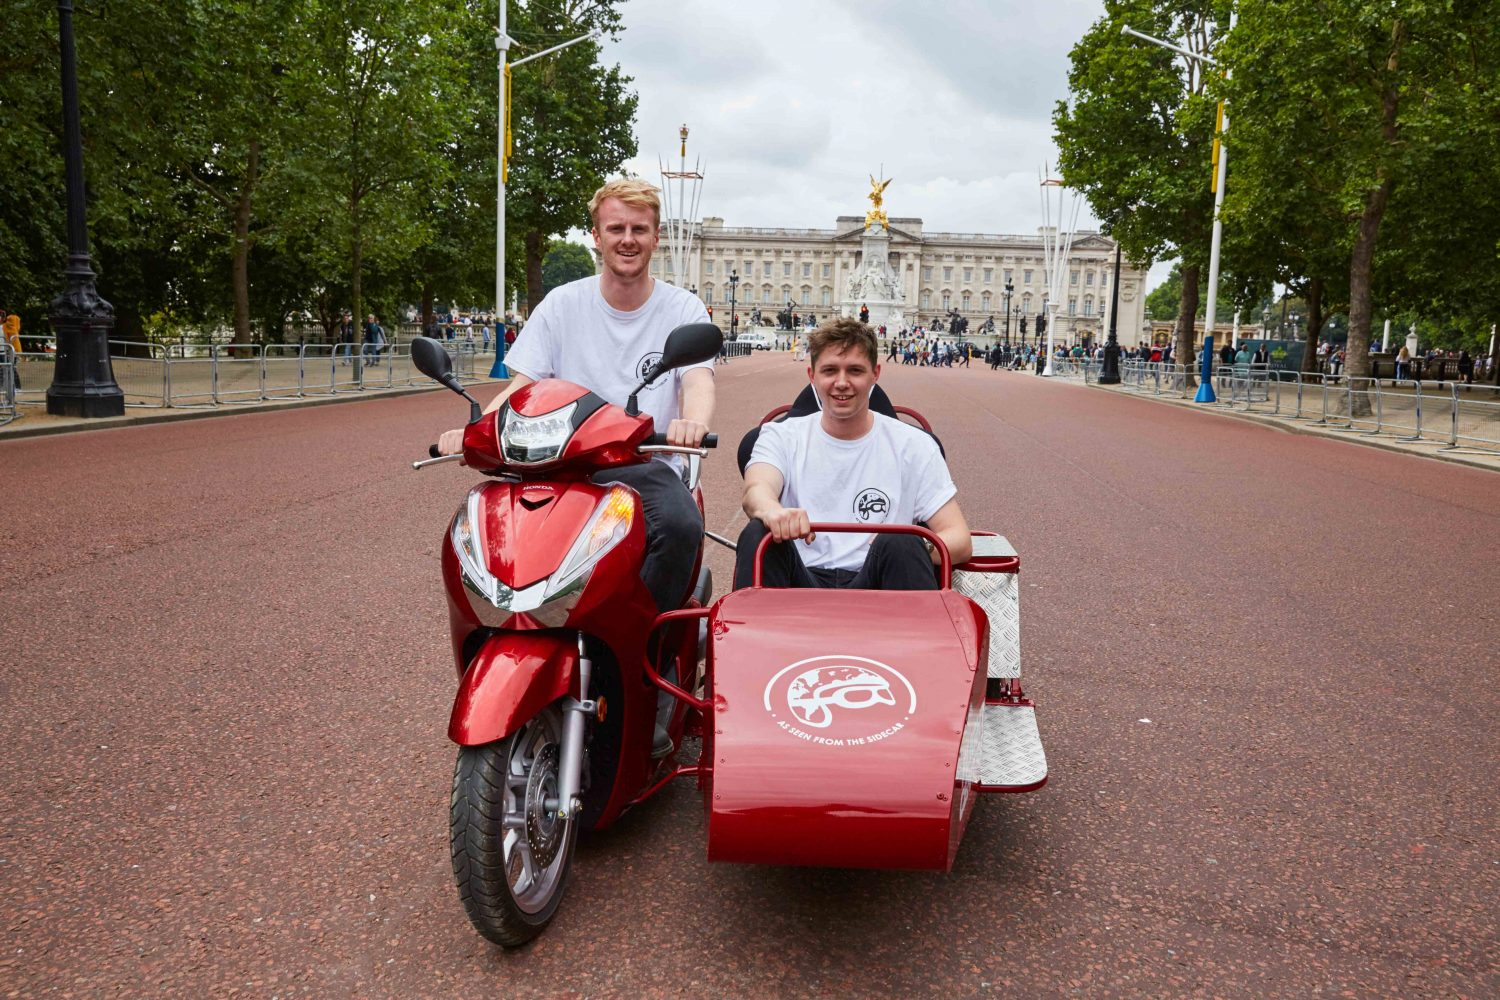 Travel consultants plan round the world trip on a scooter